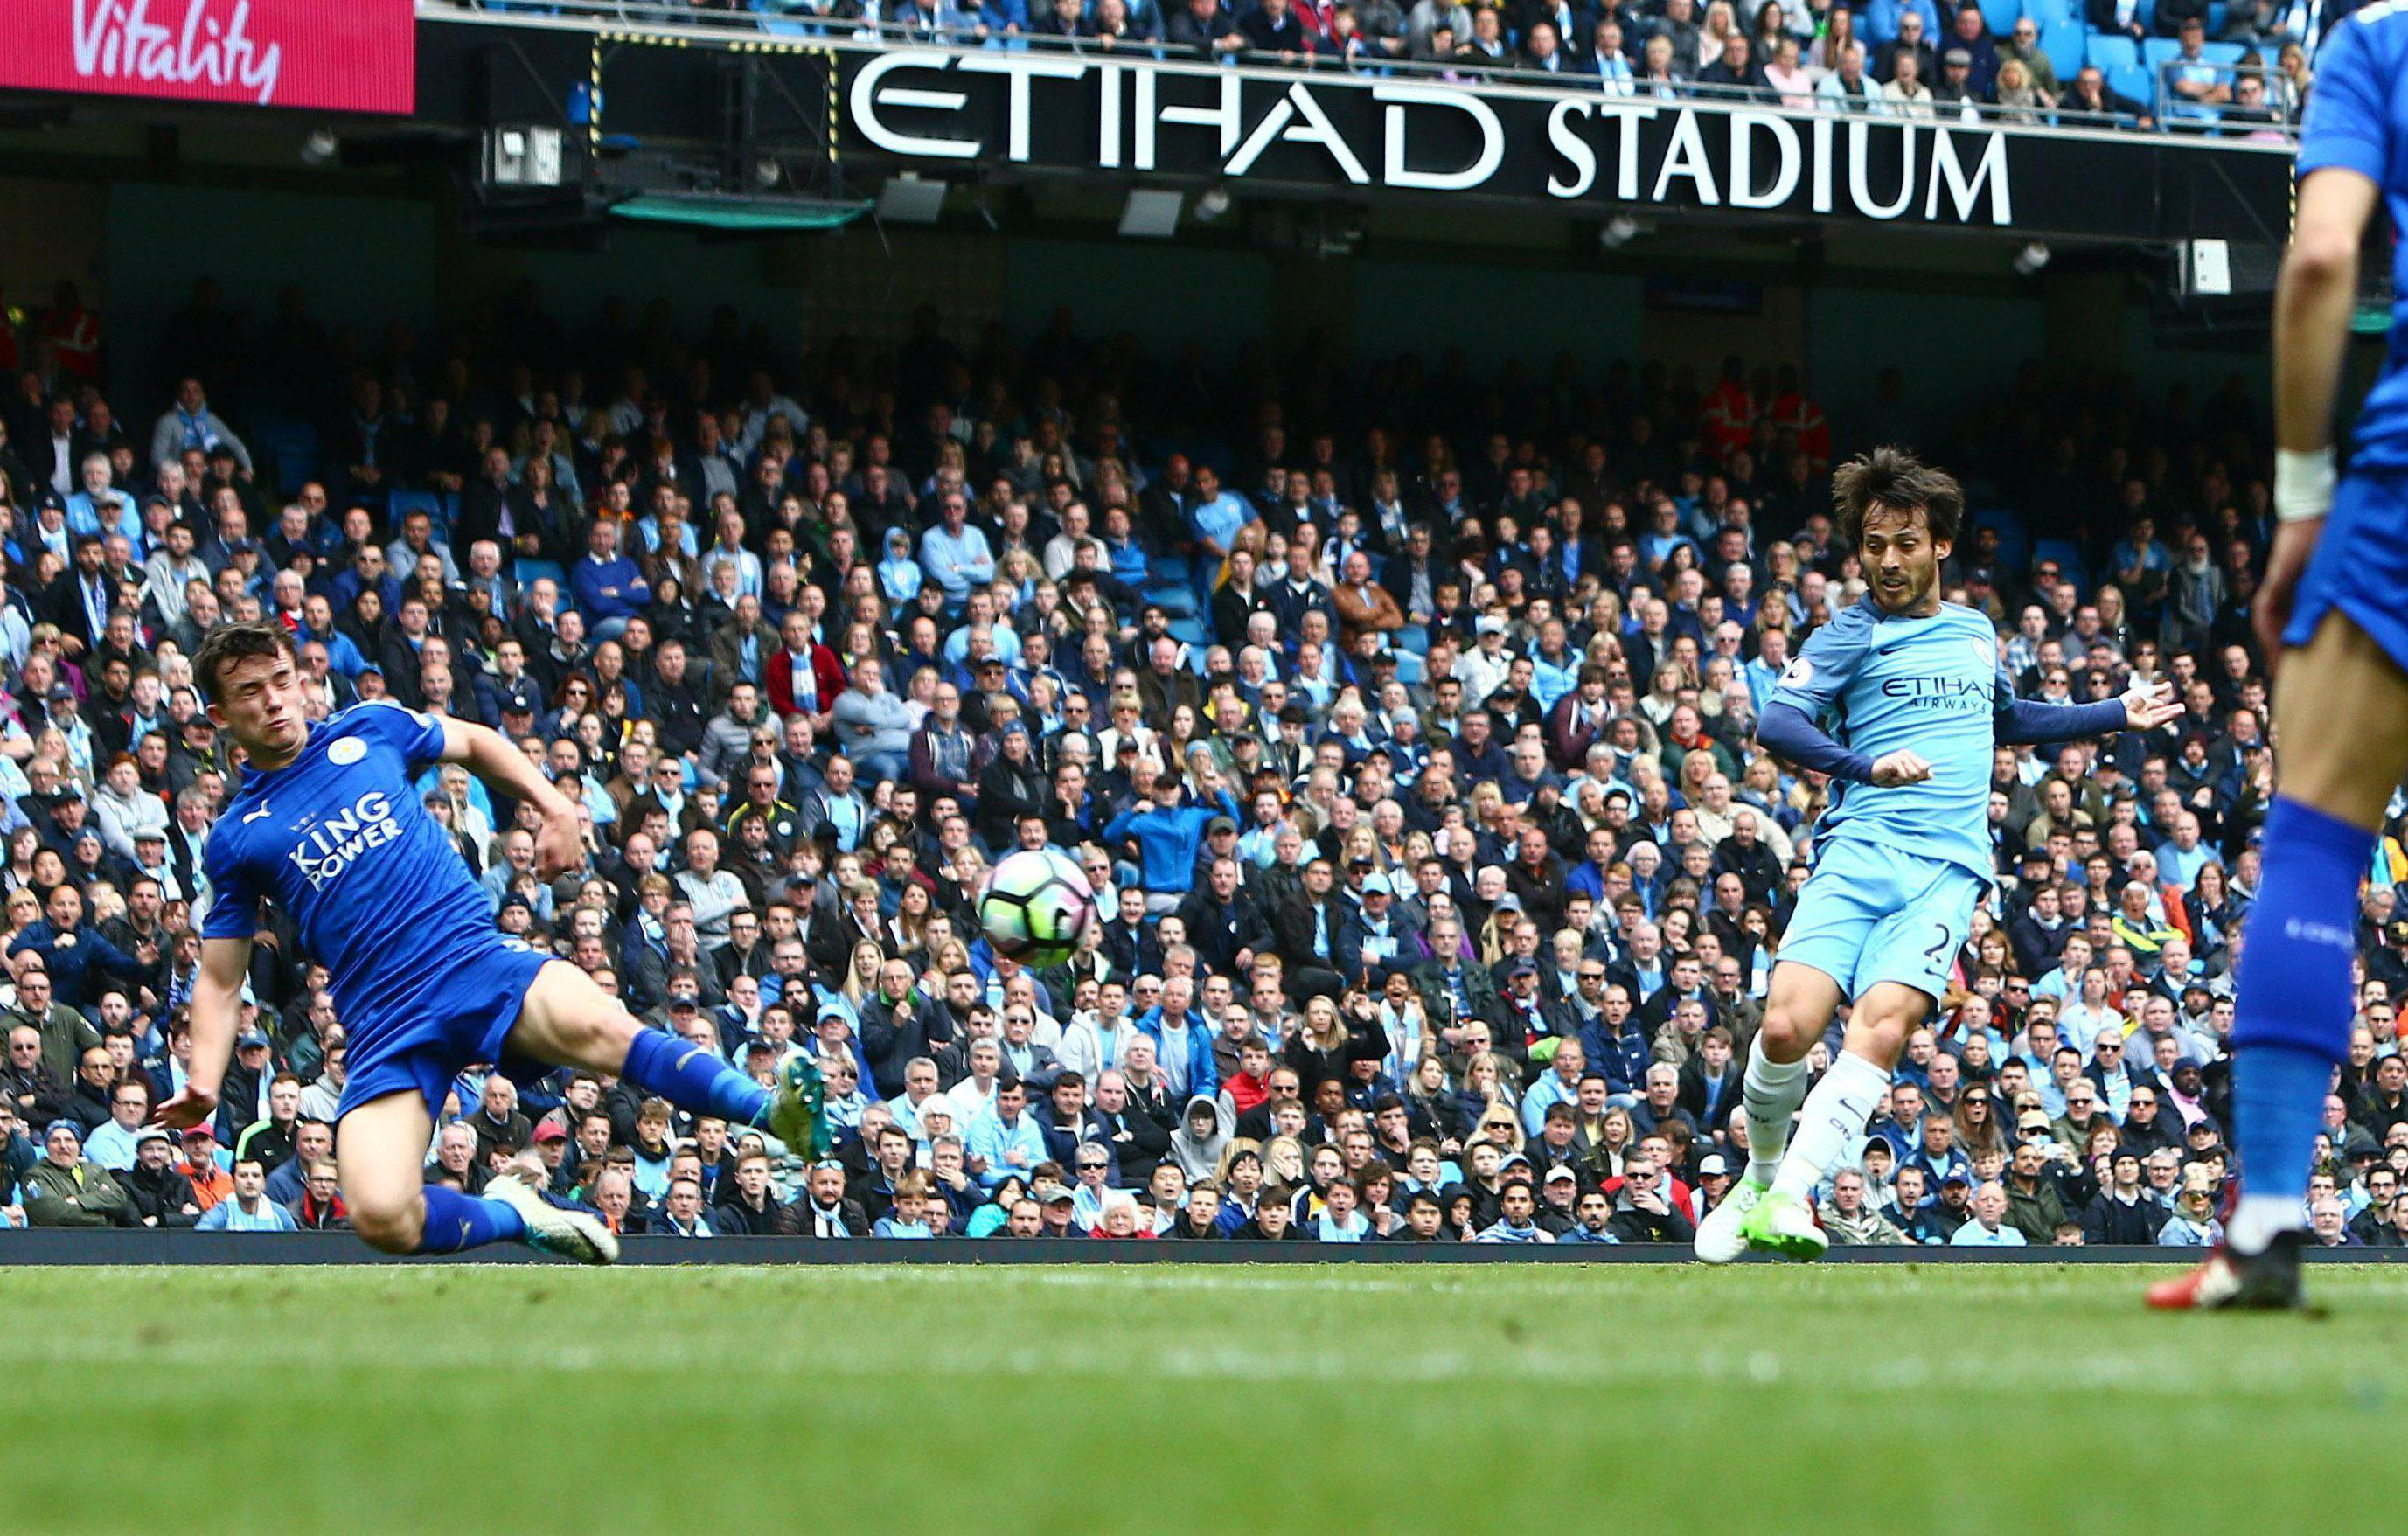 David Silva opens the scoring with controversial opener for Manchester City